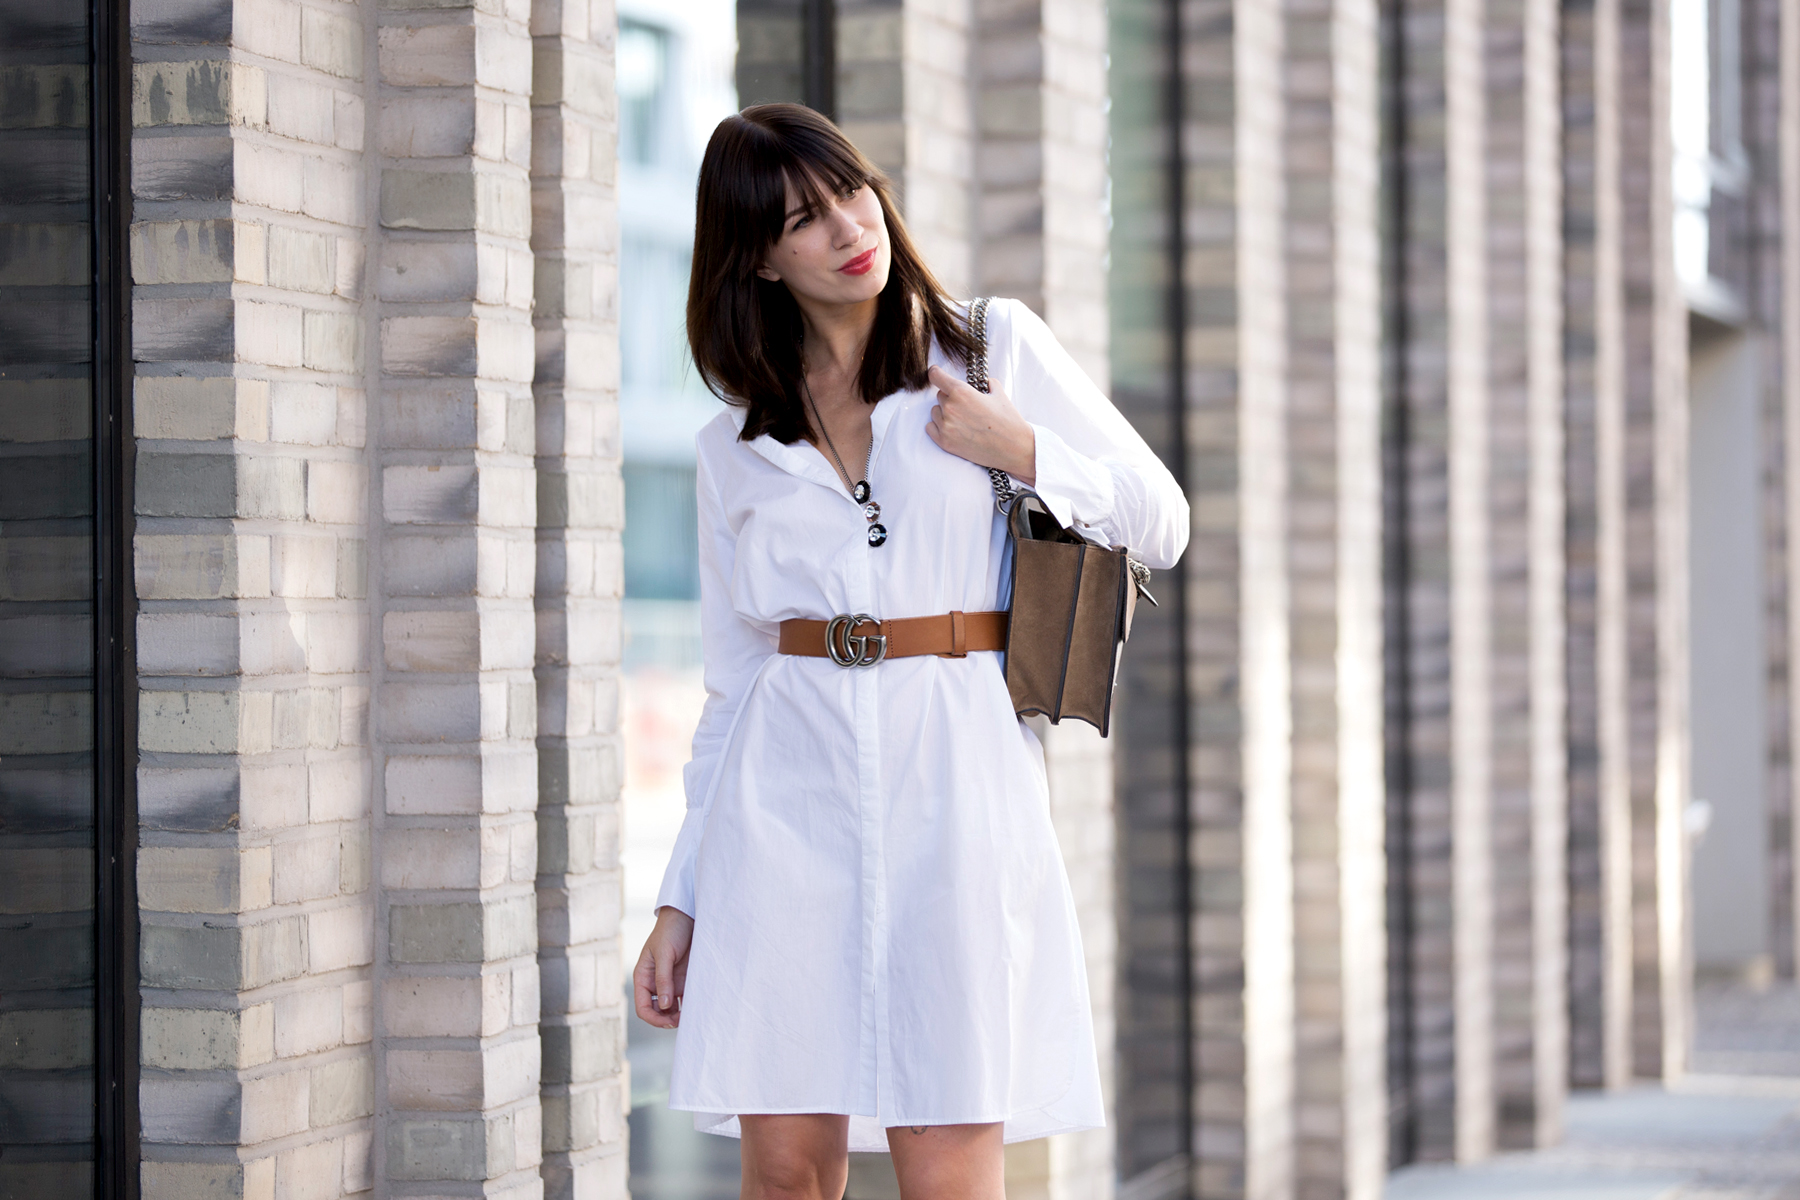 outfit white dress gucci belt dionysus bag pompom heels aquazzura diy blogger ootd fashionblogger summer streetstyle berlin bloggers cats & dogs modeblog ricarda schernus lifestyleblogger 4